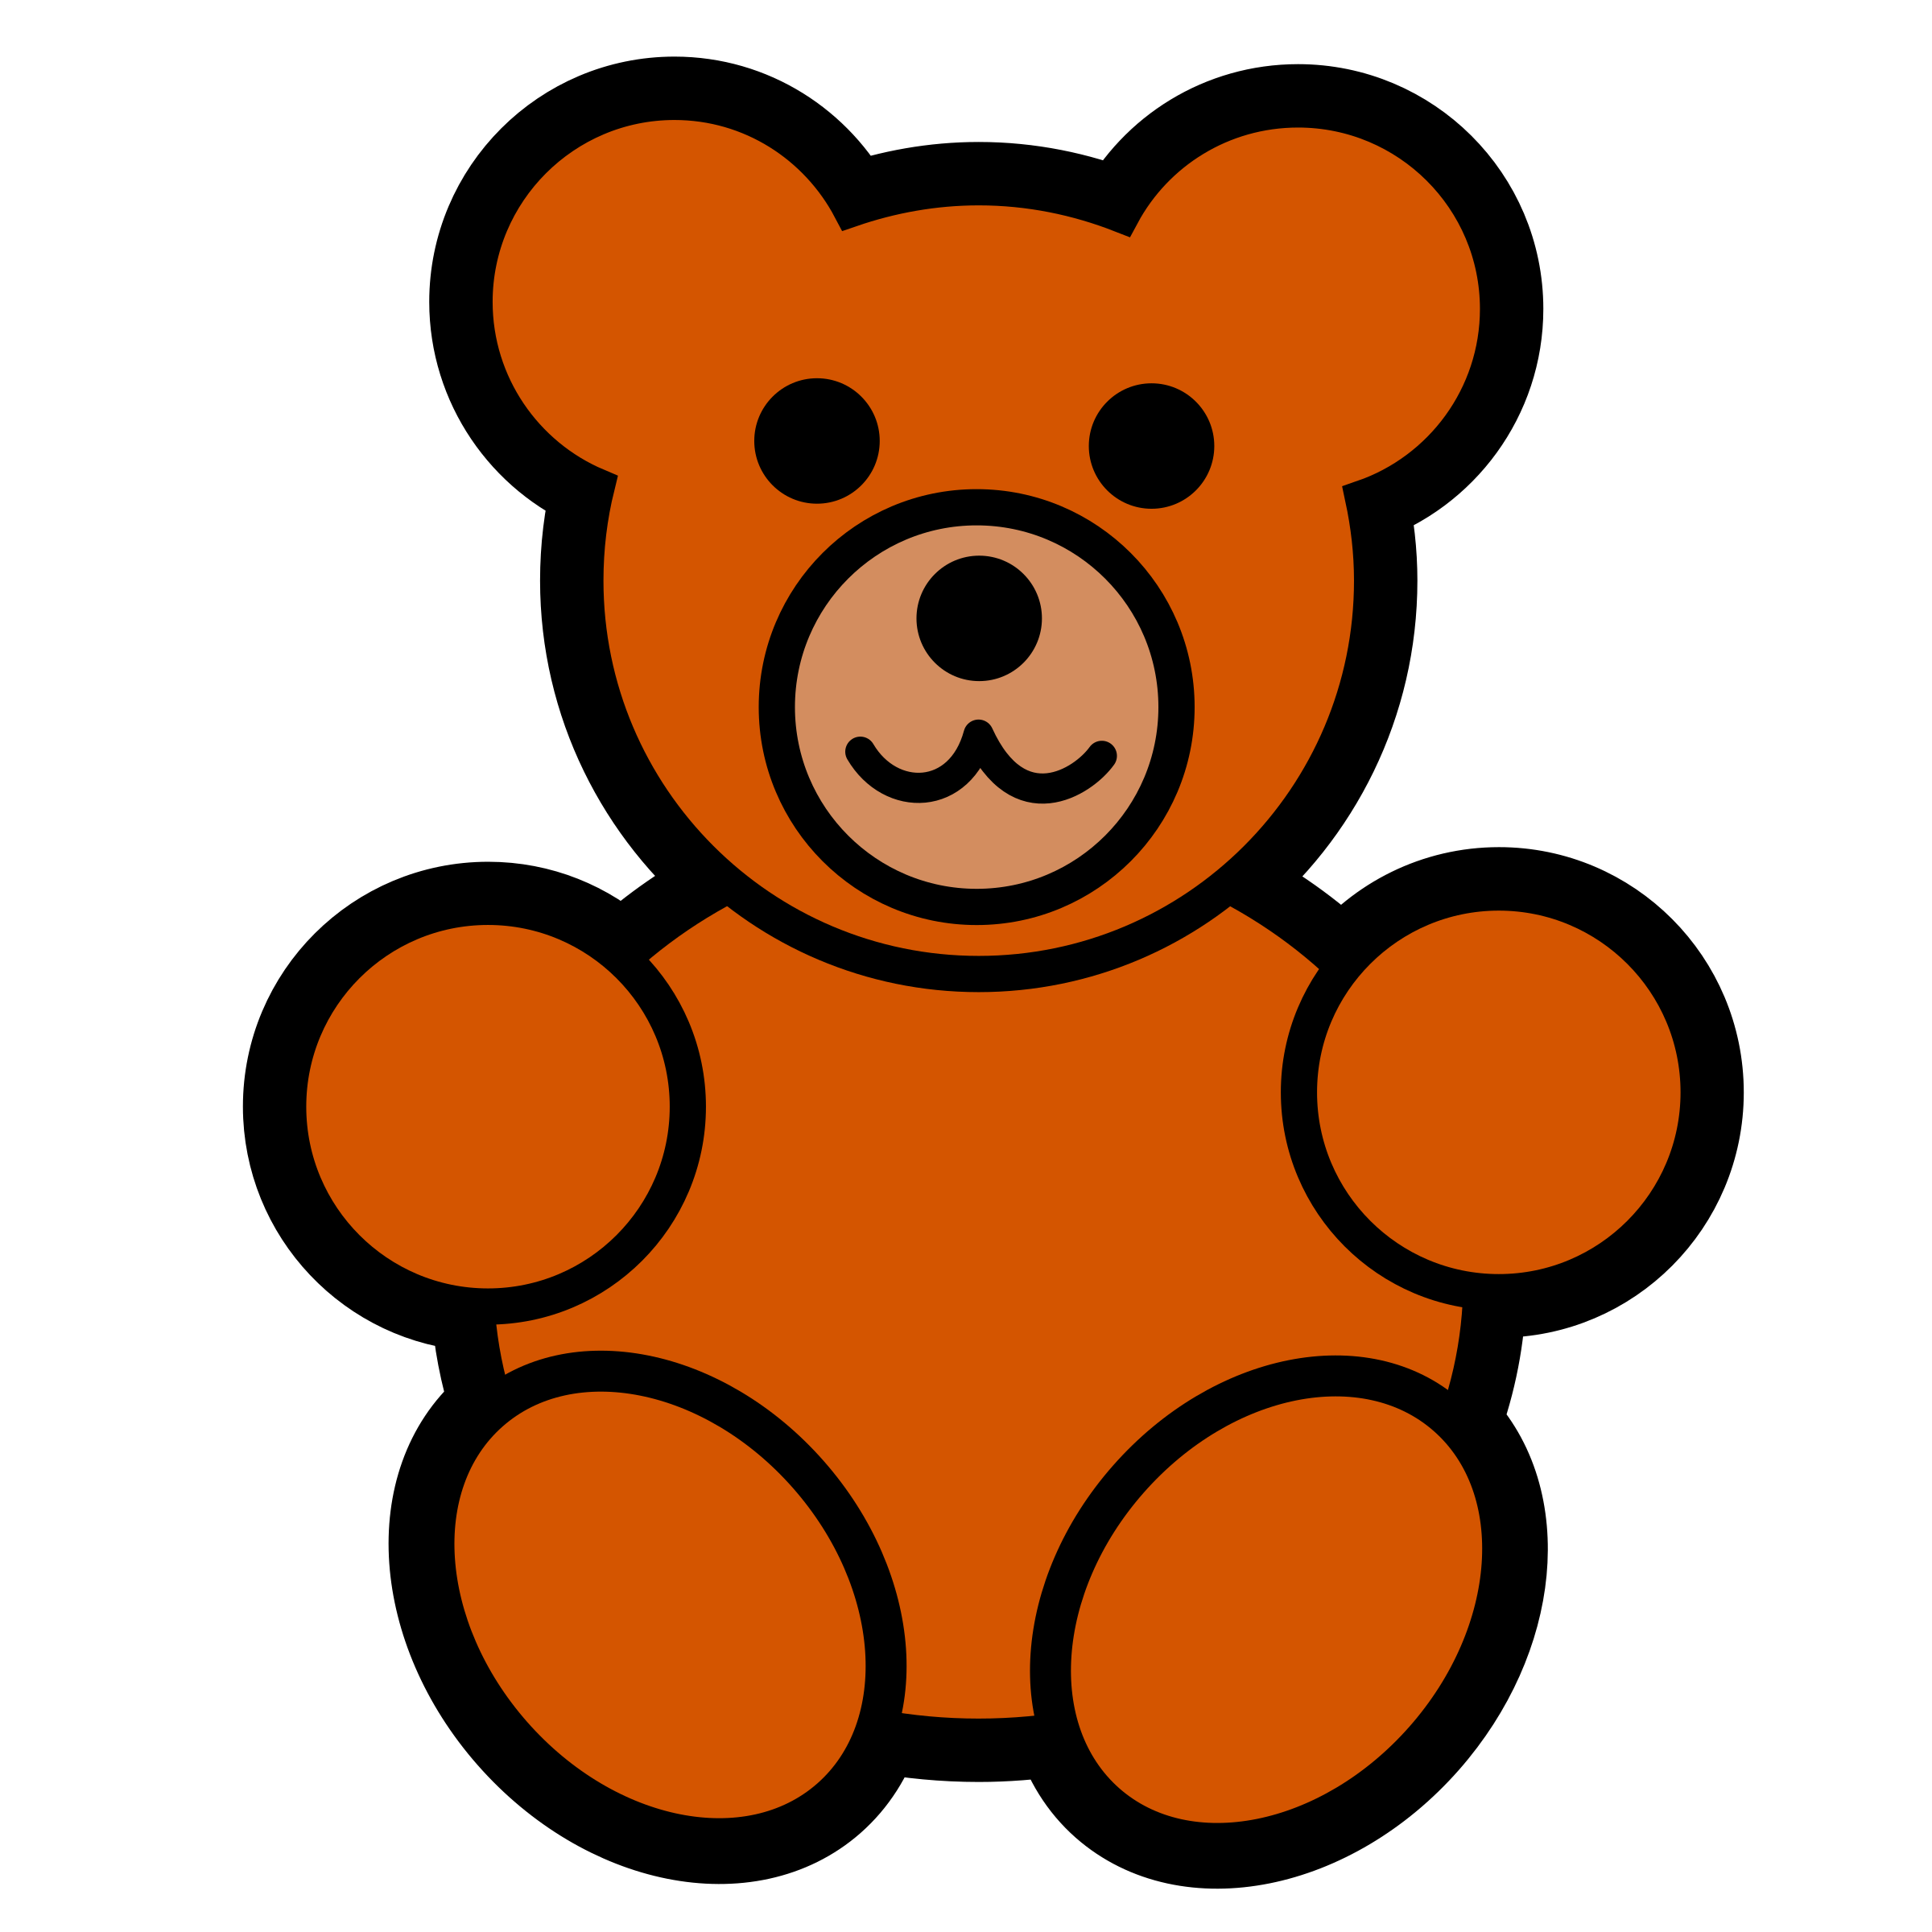 teddy bear icon by pitr